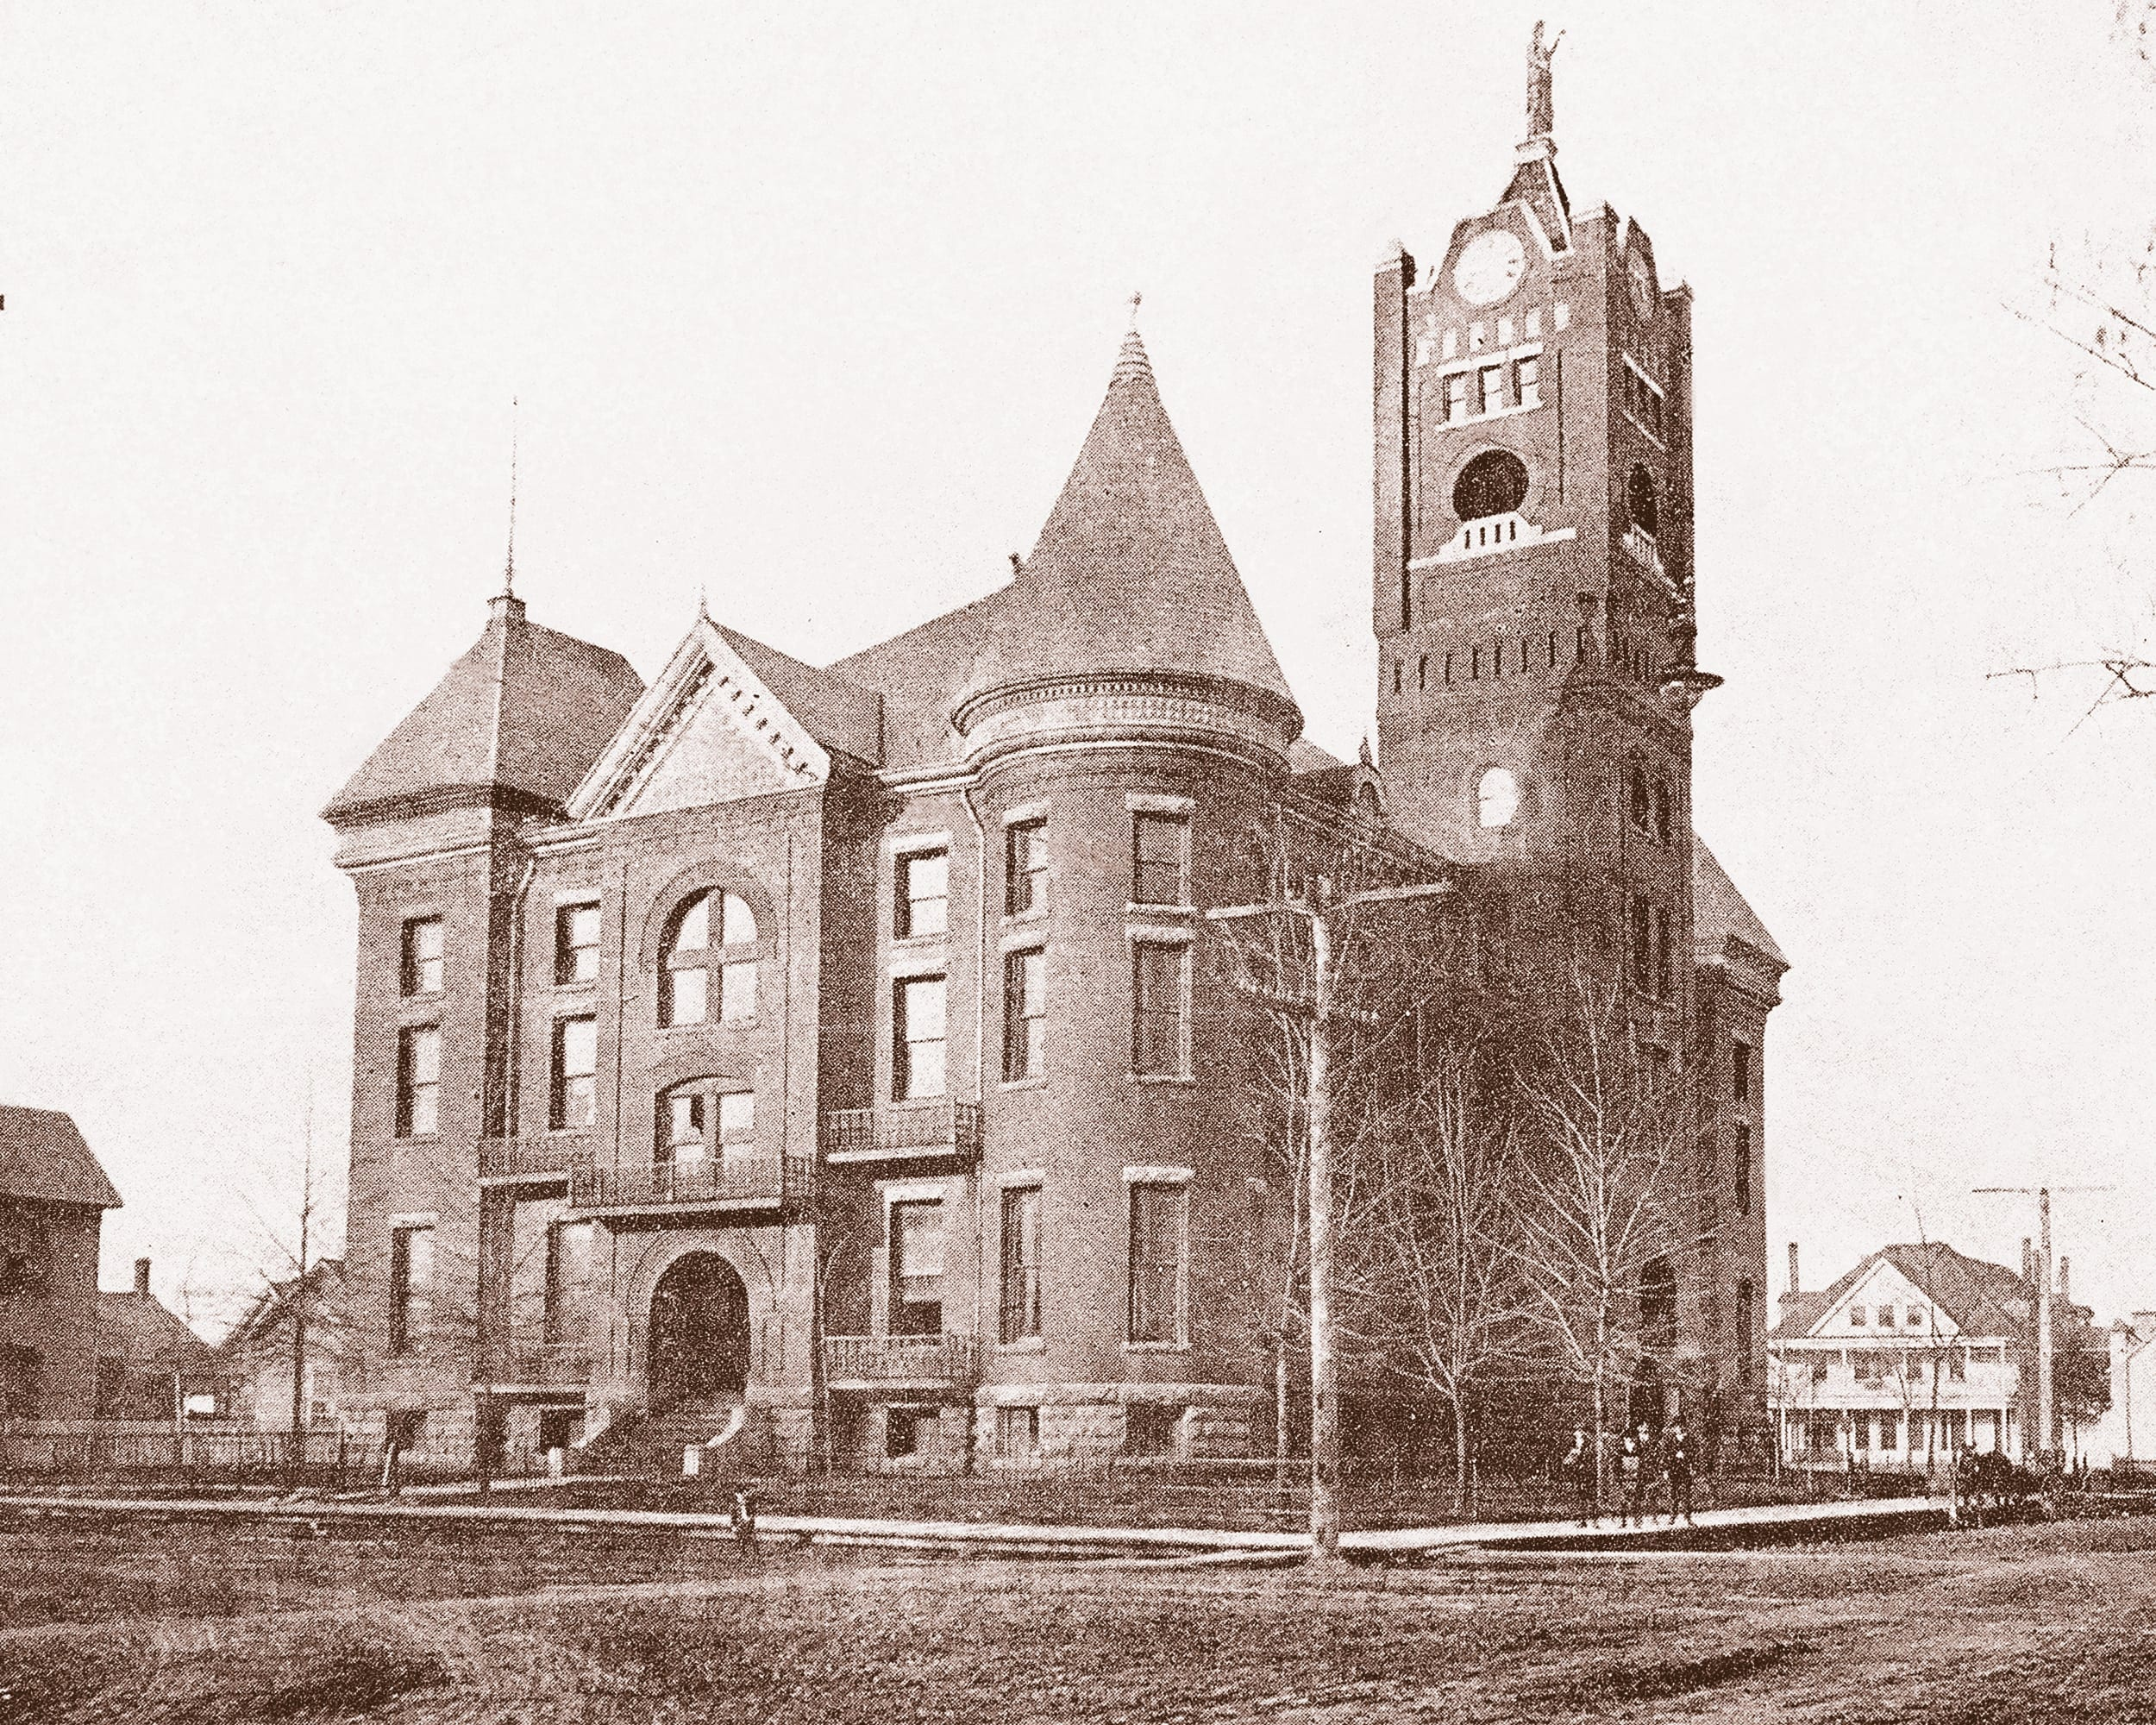 1903 – Jackson County Courthouse in Newport